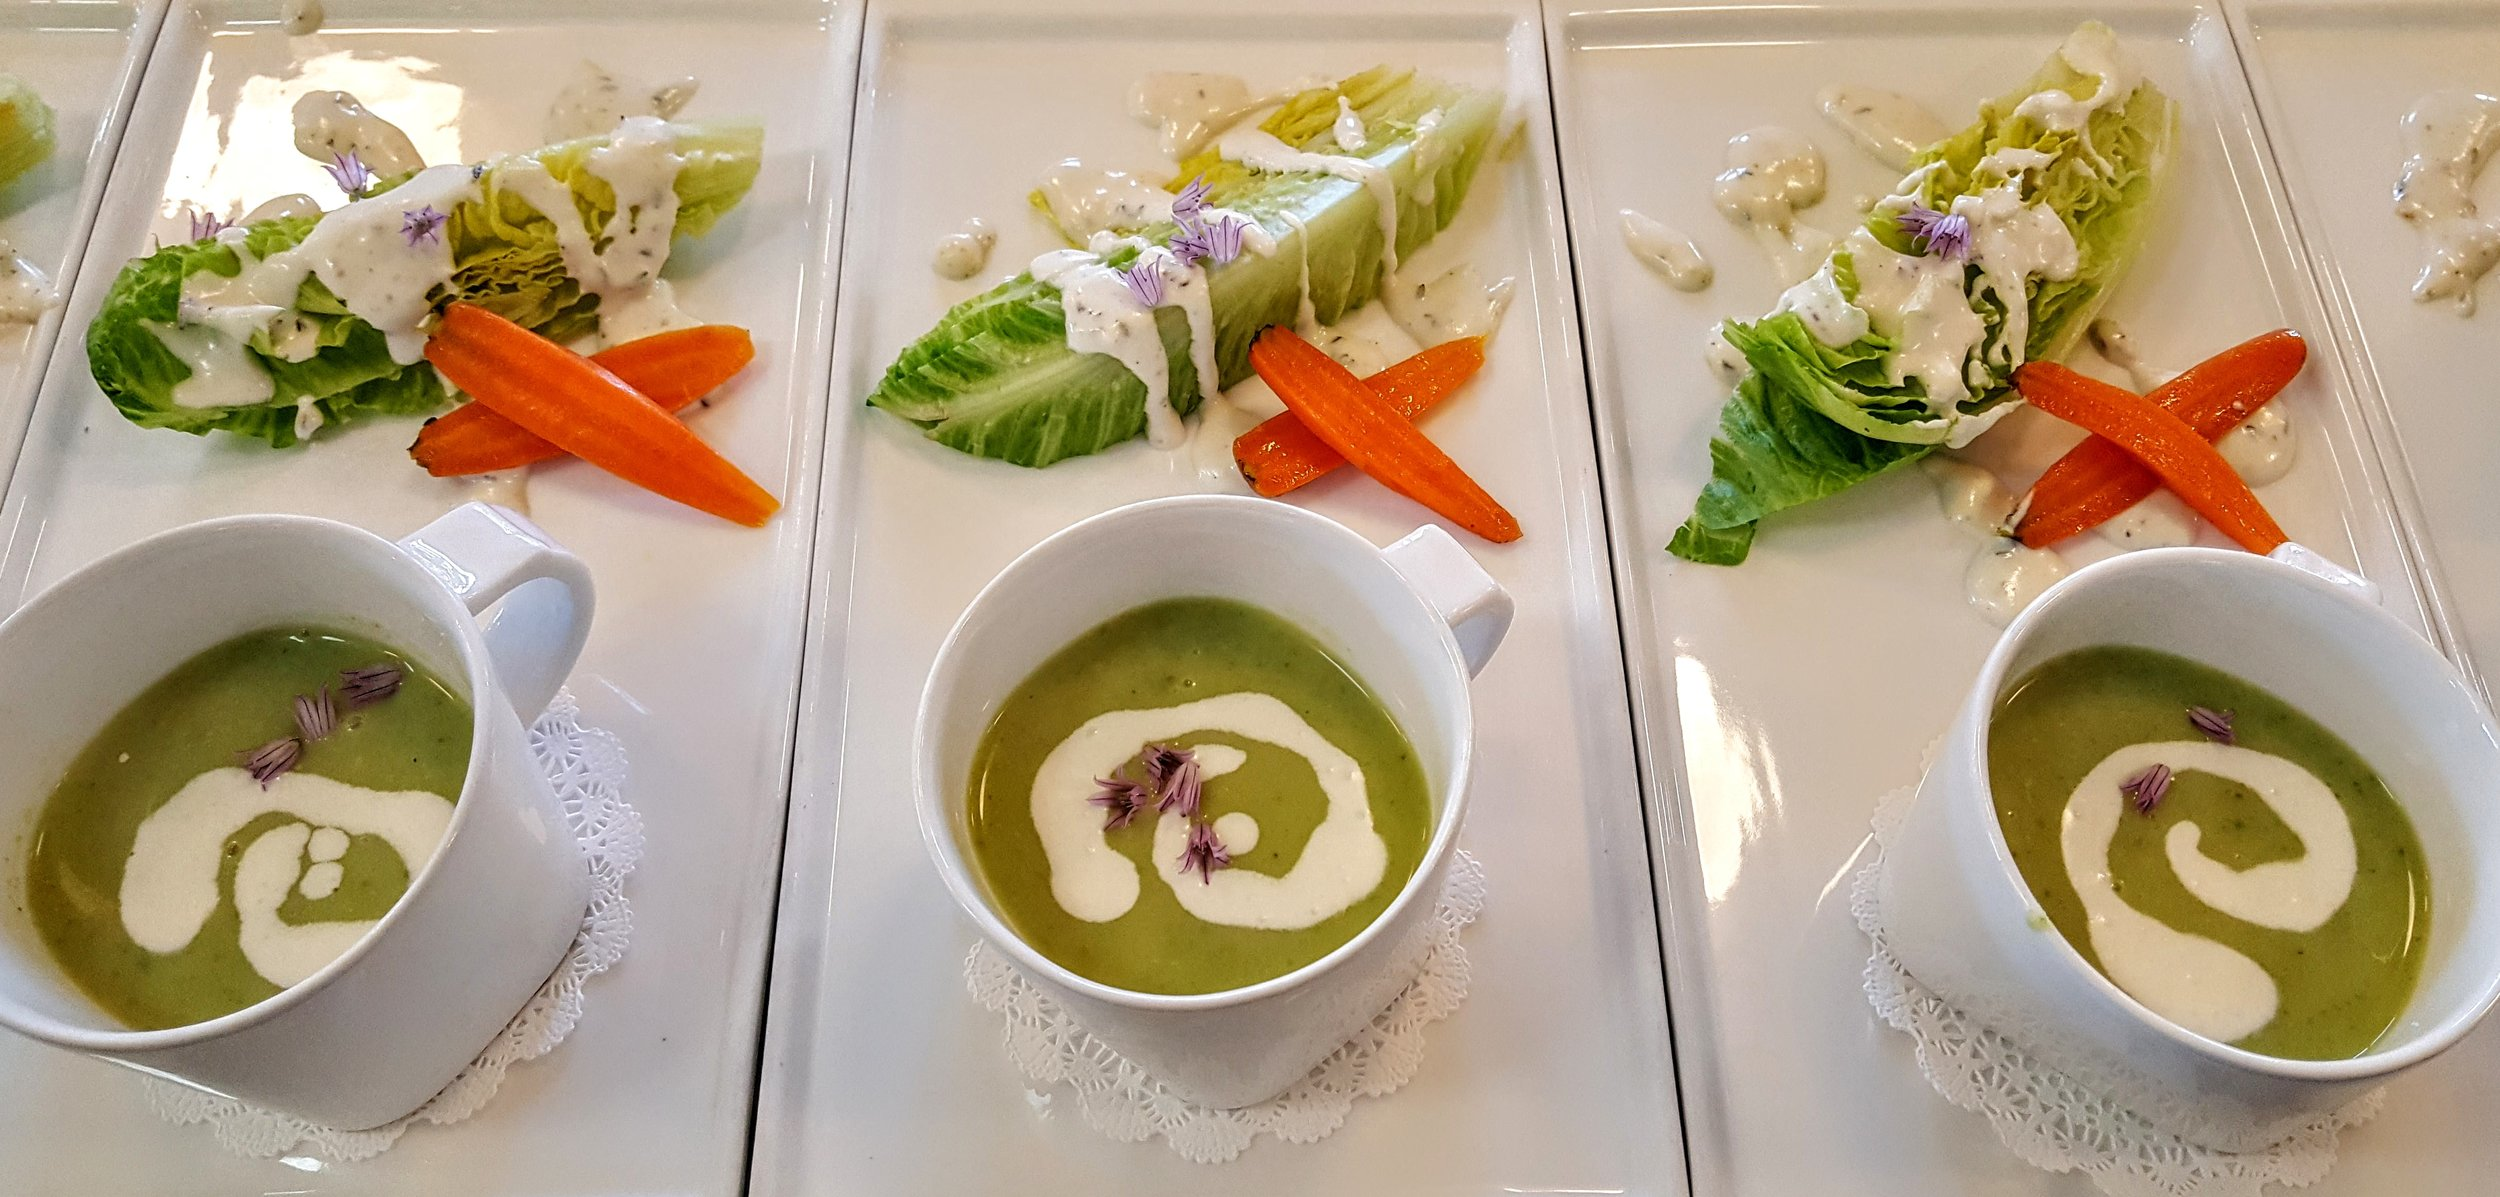 No. 9 Chilled English Pea & Basil Soup.jpg